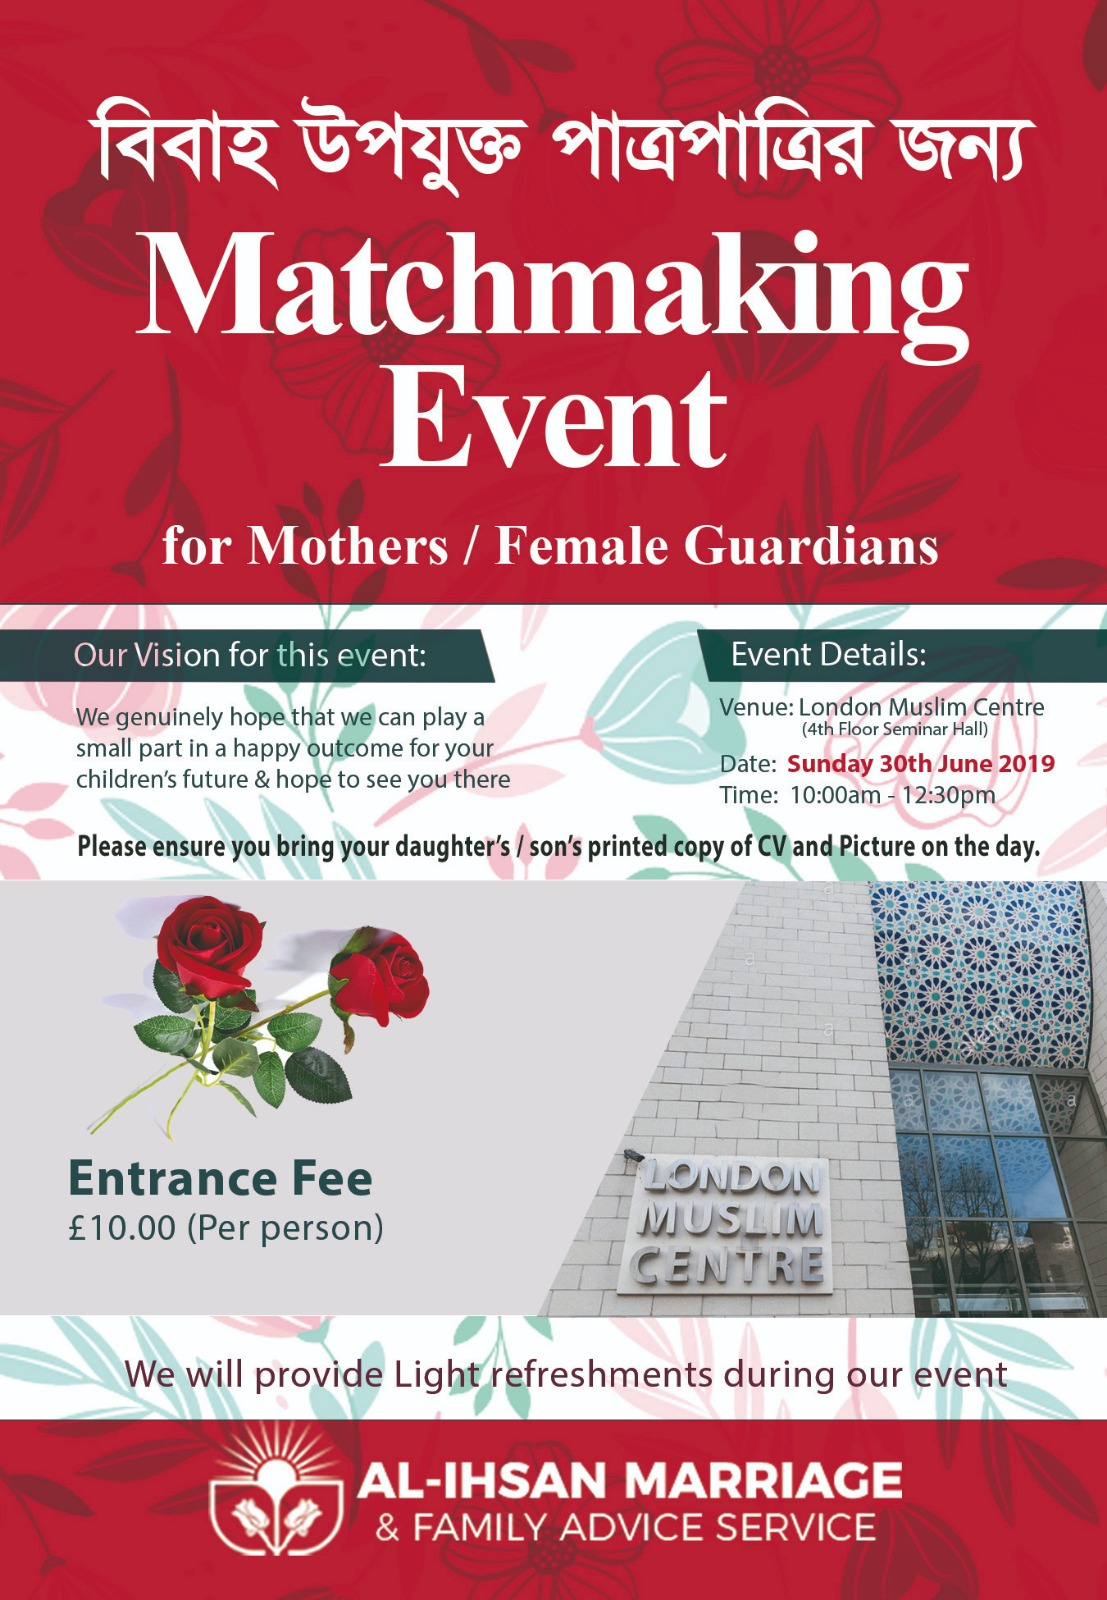 Matchmaking Event for Mothers / Female Guardians Jun-2019